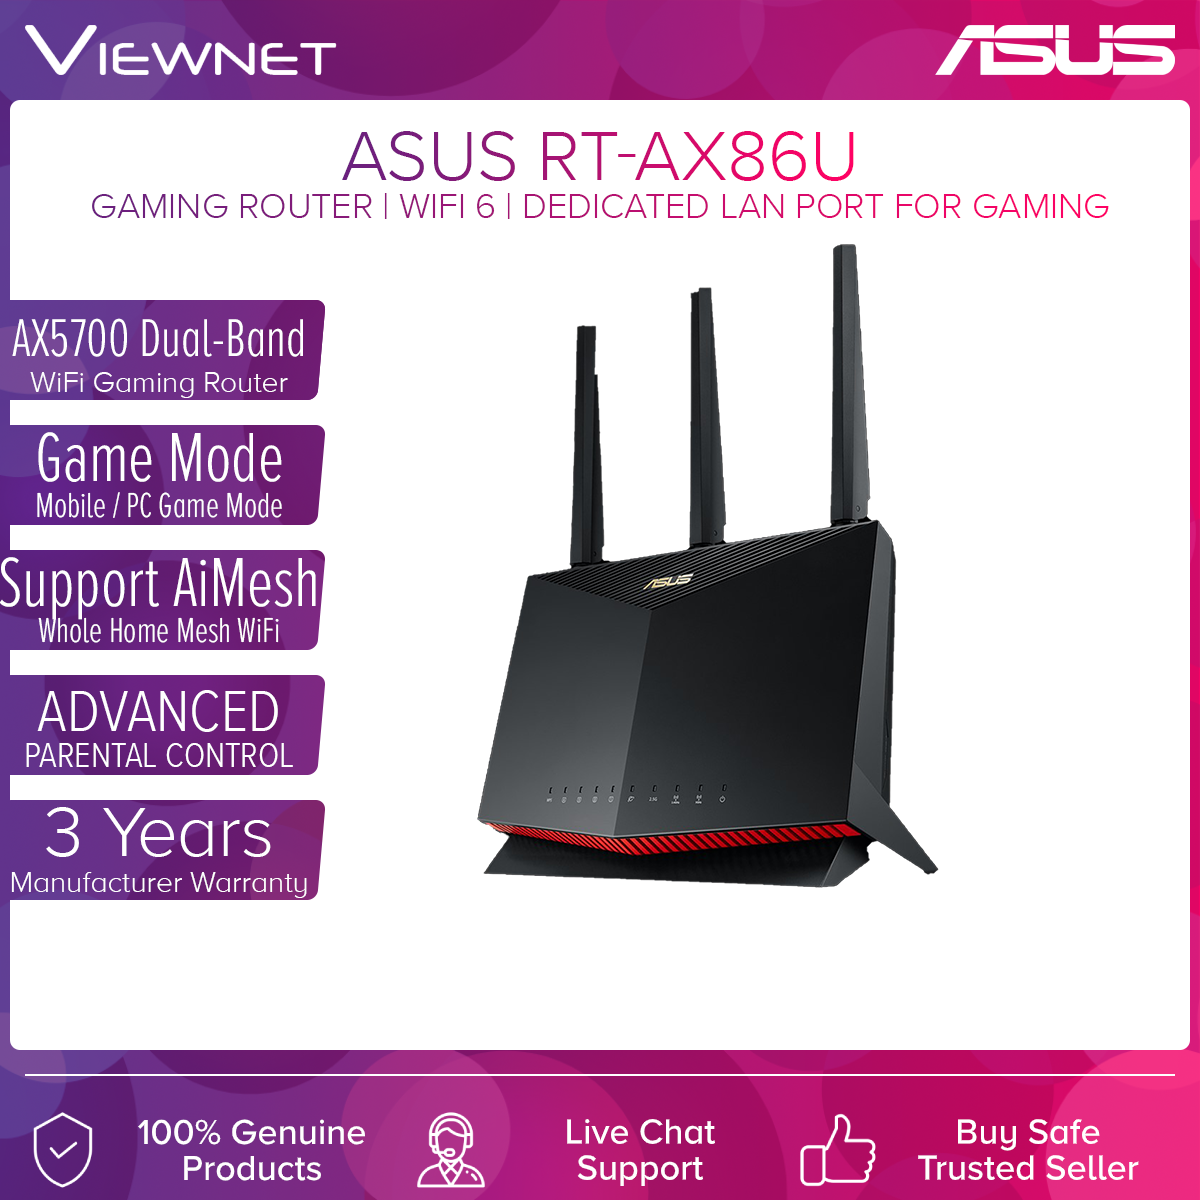 ASUS RT-AX86U AX5700 Dual Band WiFi 6 Gaming Router with AiMesh Support, Parental Control, Lifetime free Internet Security, 2.5G Port